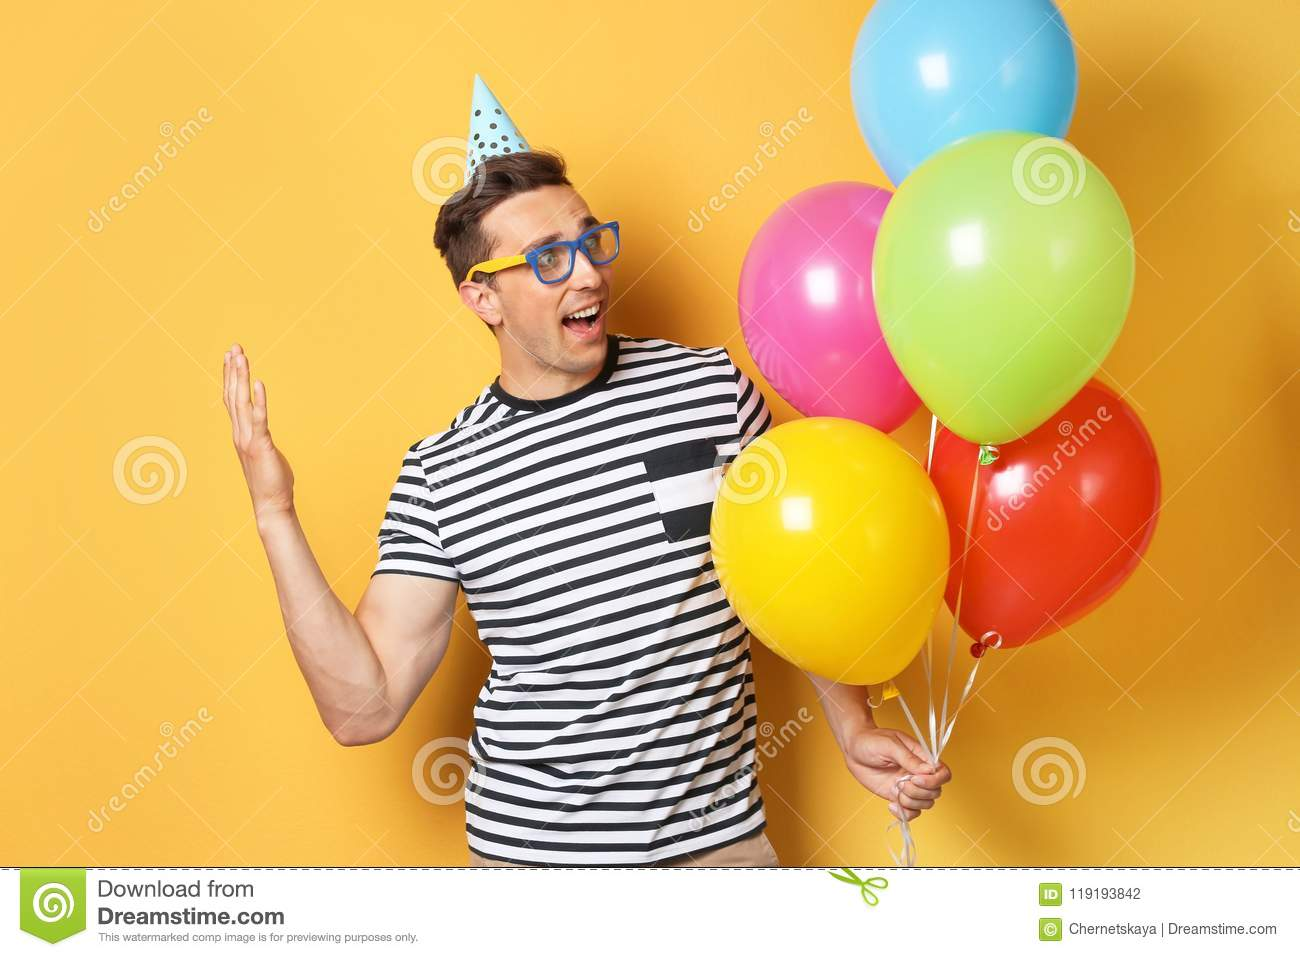 Young Excited Man With Bright Balloons On Color Background Birthday Celebration